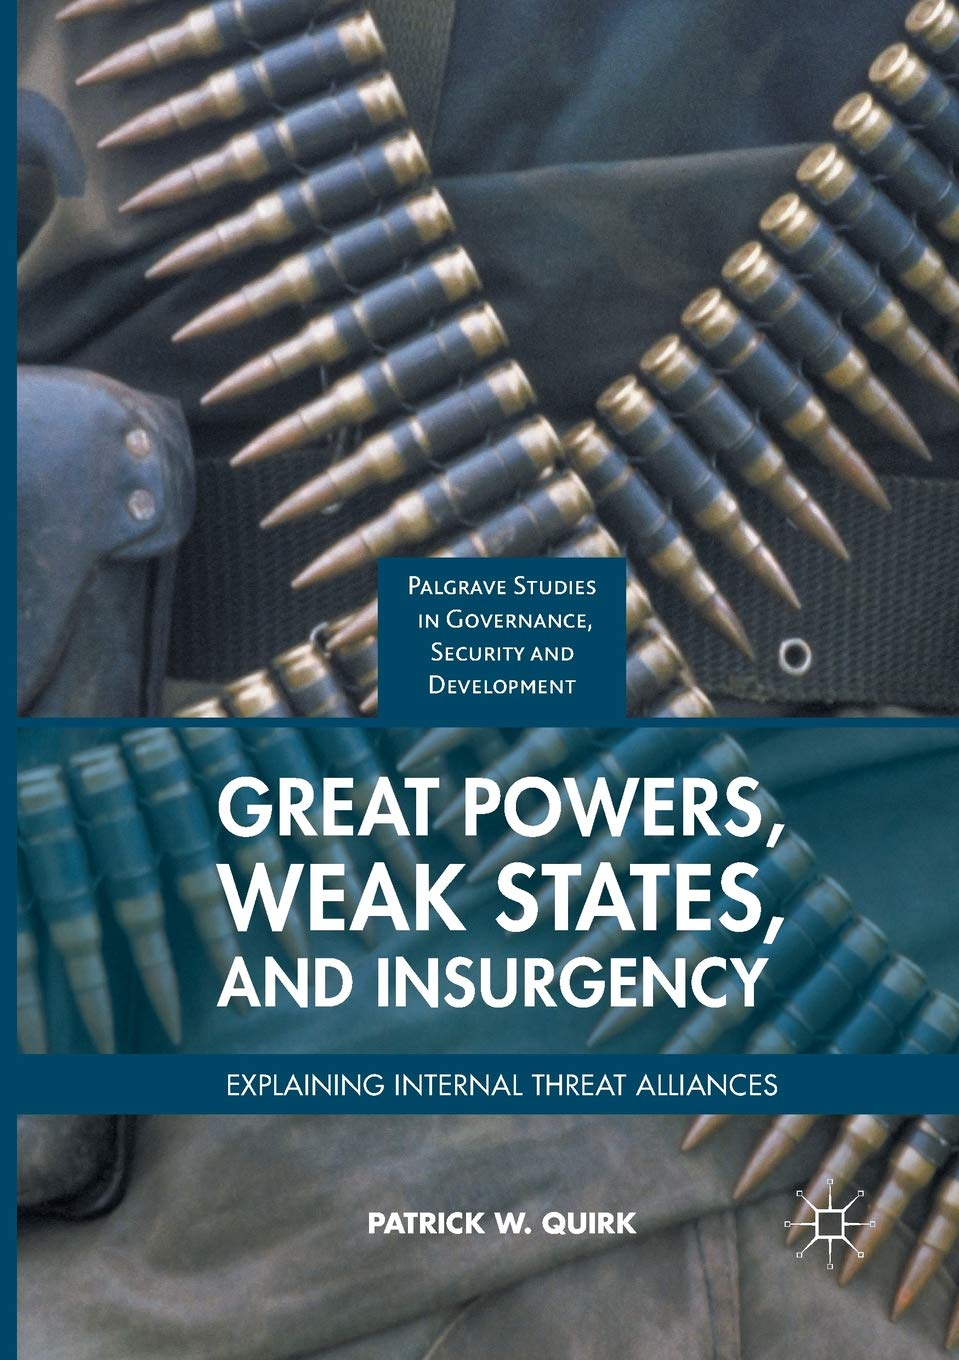 Great Powers Weak States And Insurgency  Explaining Internal Threat Alliances  Governance Security And Development